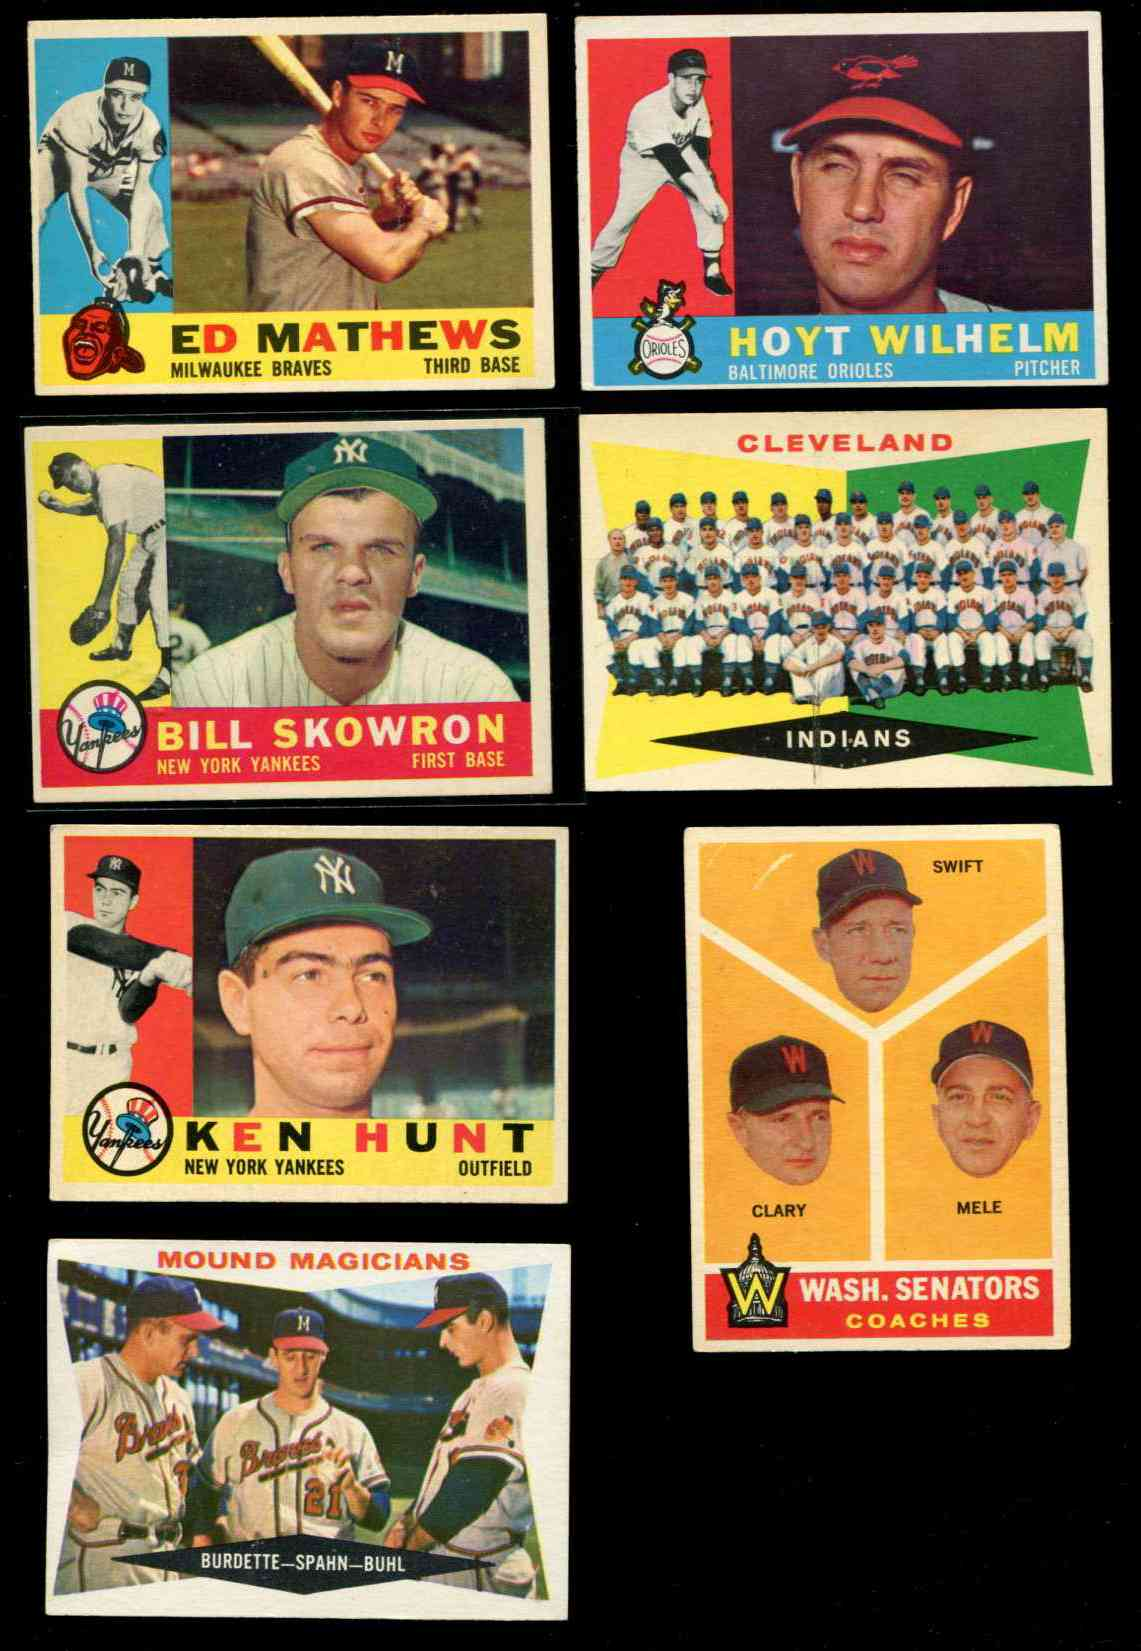 1960 Topps #420 Eddie Mathews (Braves) Baseball cards value